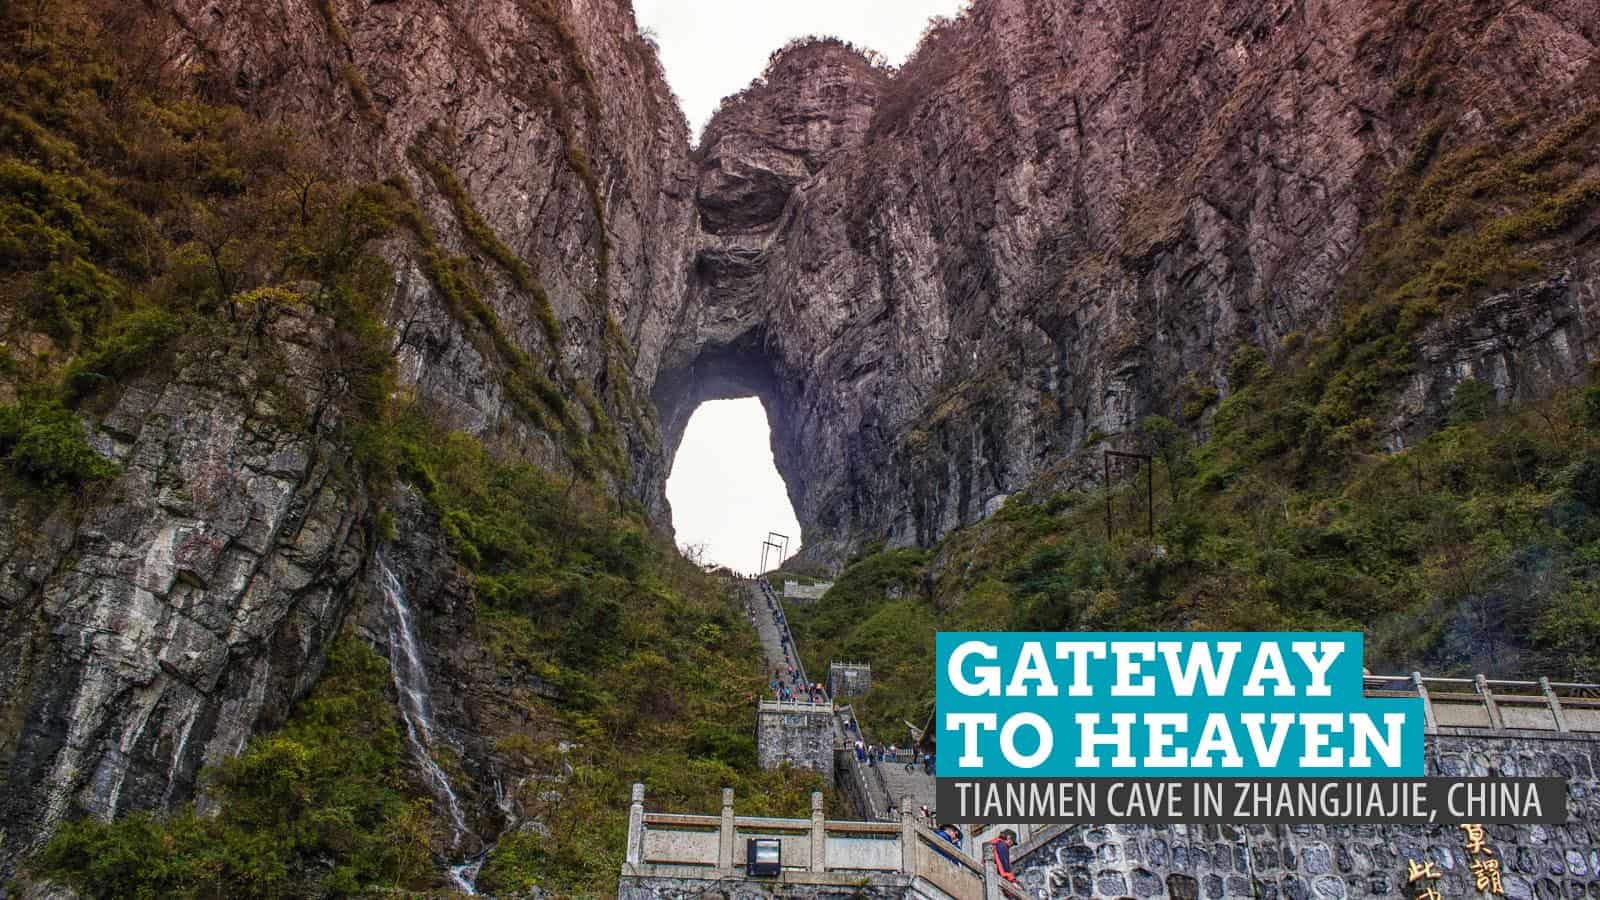 Gateway to Heaven: Tianmen Cave in Zhangjiajie, China